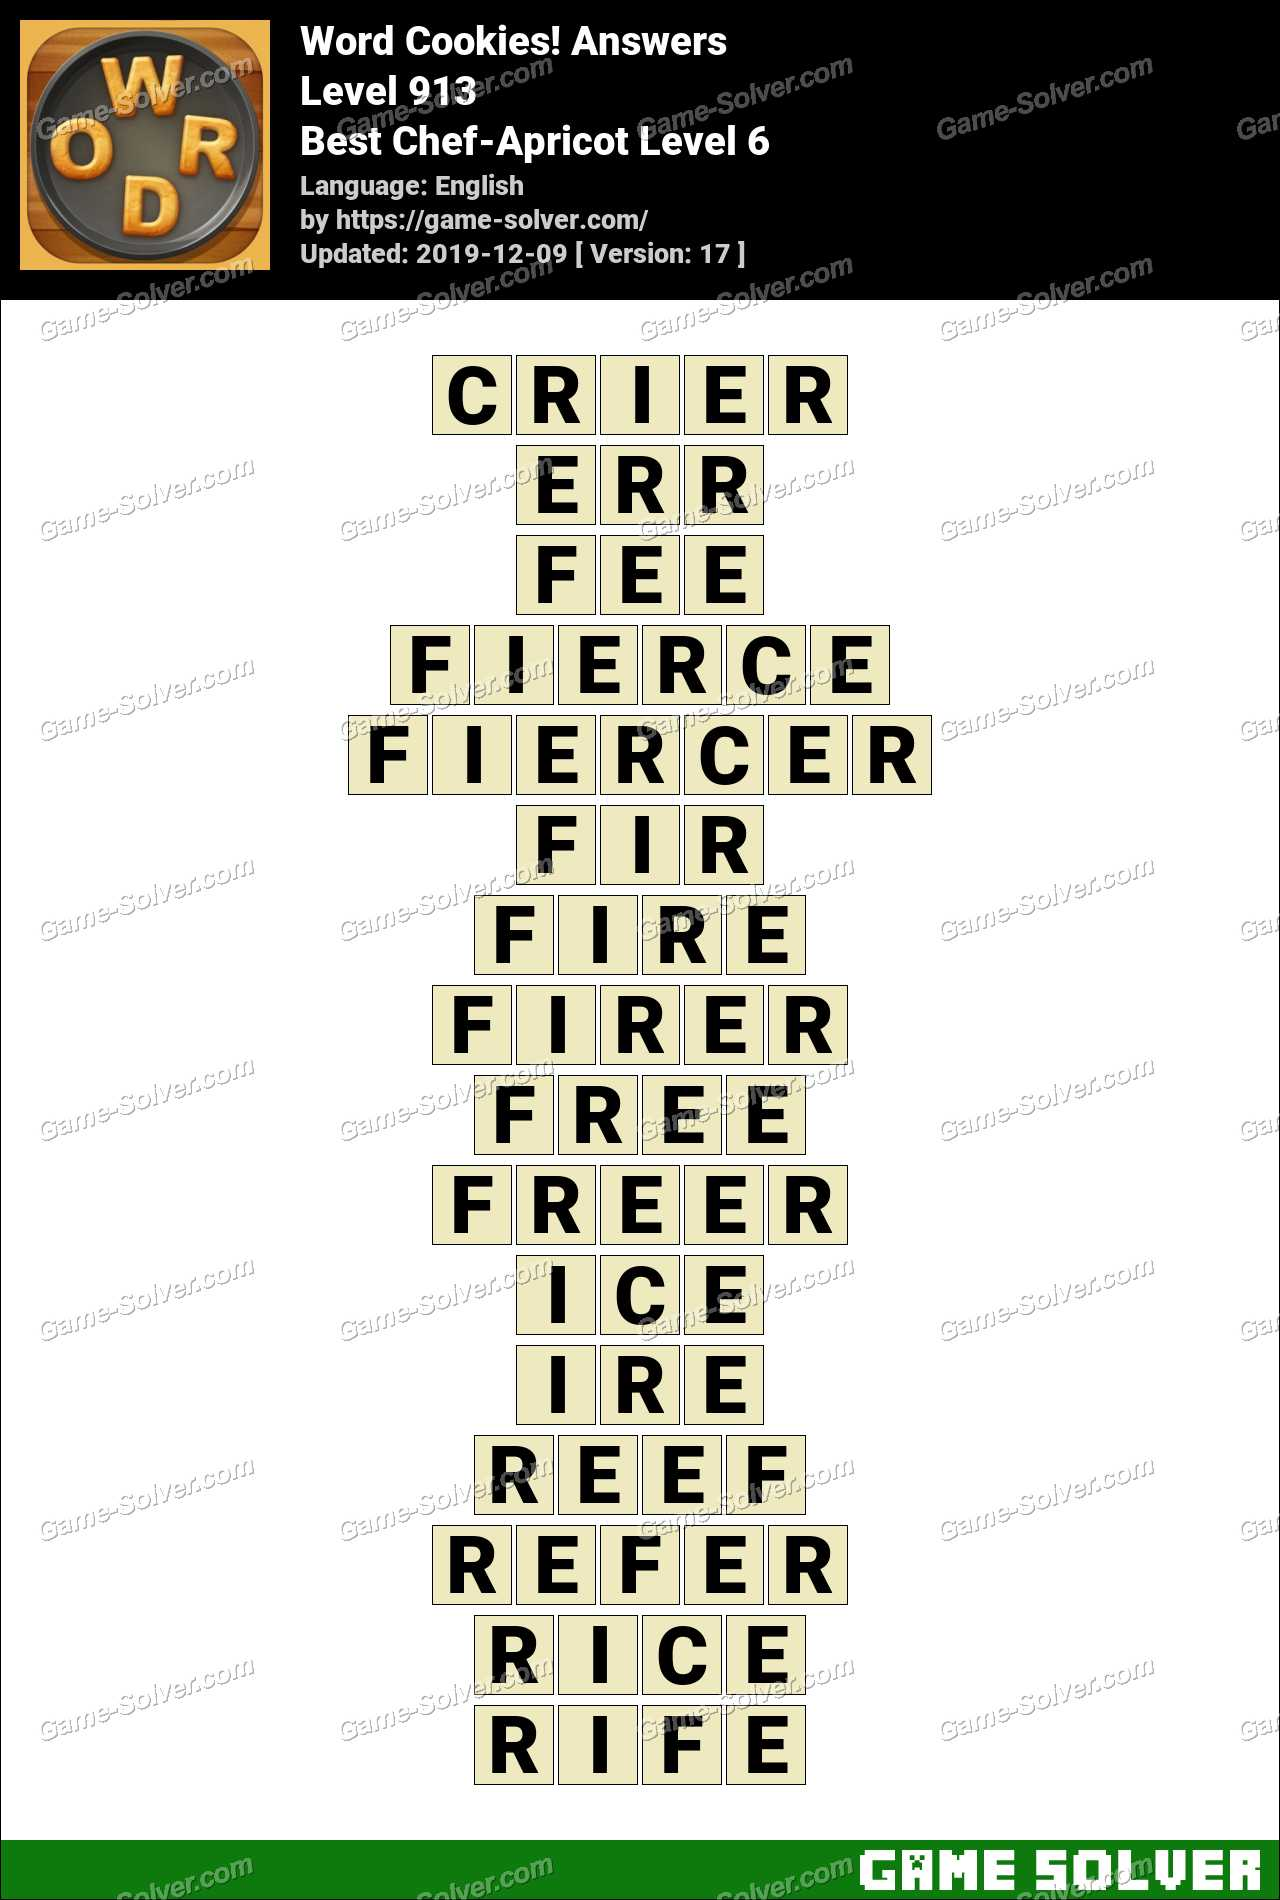 Word Cookies Best Chef-Apricot Level 6 Answers